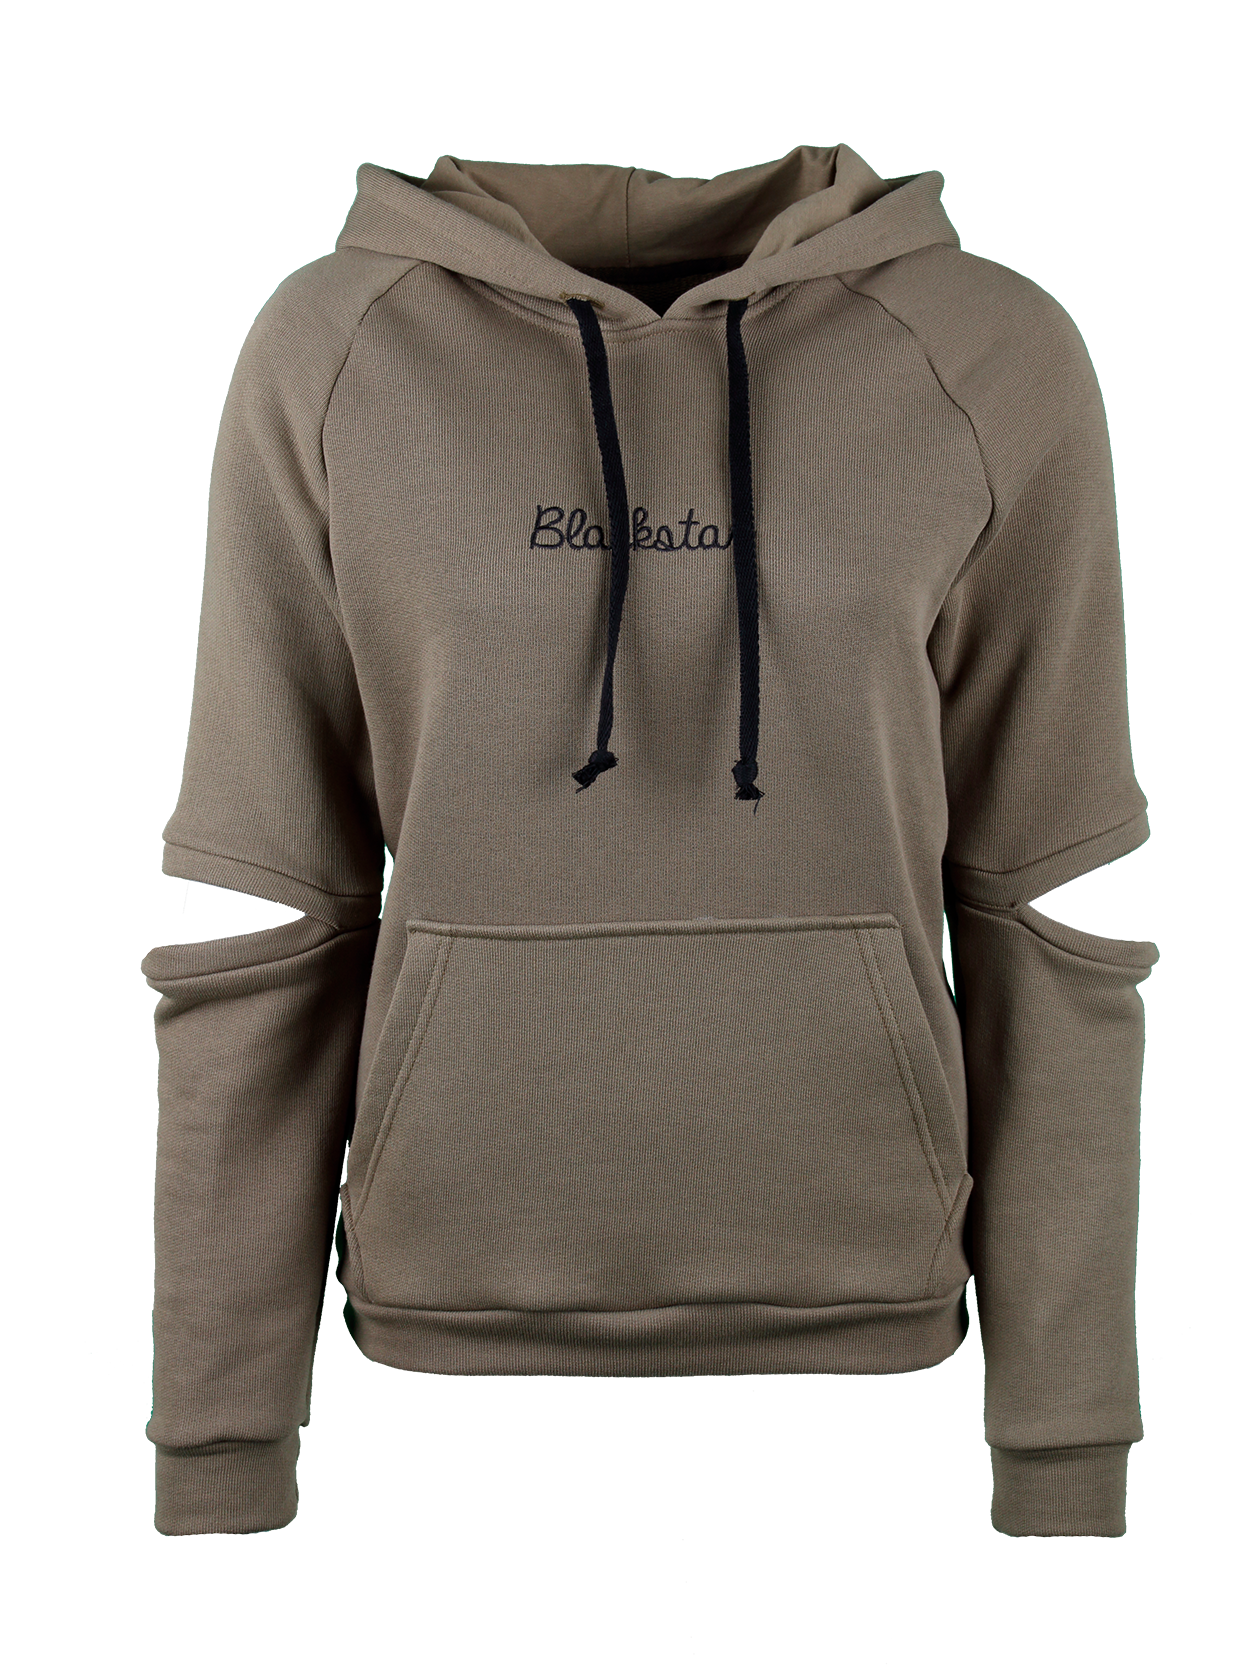 Womens hoodie Hole Black StarWomens hoodie by Black Star Wear. Slevees with holes on elbows. Elastic band cuffs and cut, front pocket. Blackstar embroidery on the chest. Avaliable in beige and khaki.<br><br>size: M<br>color: Khaki<br>gender: female